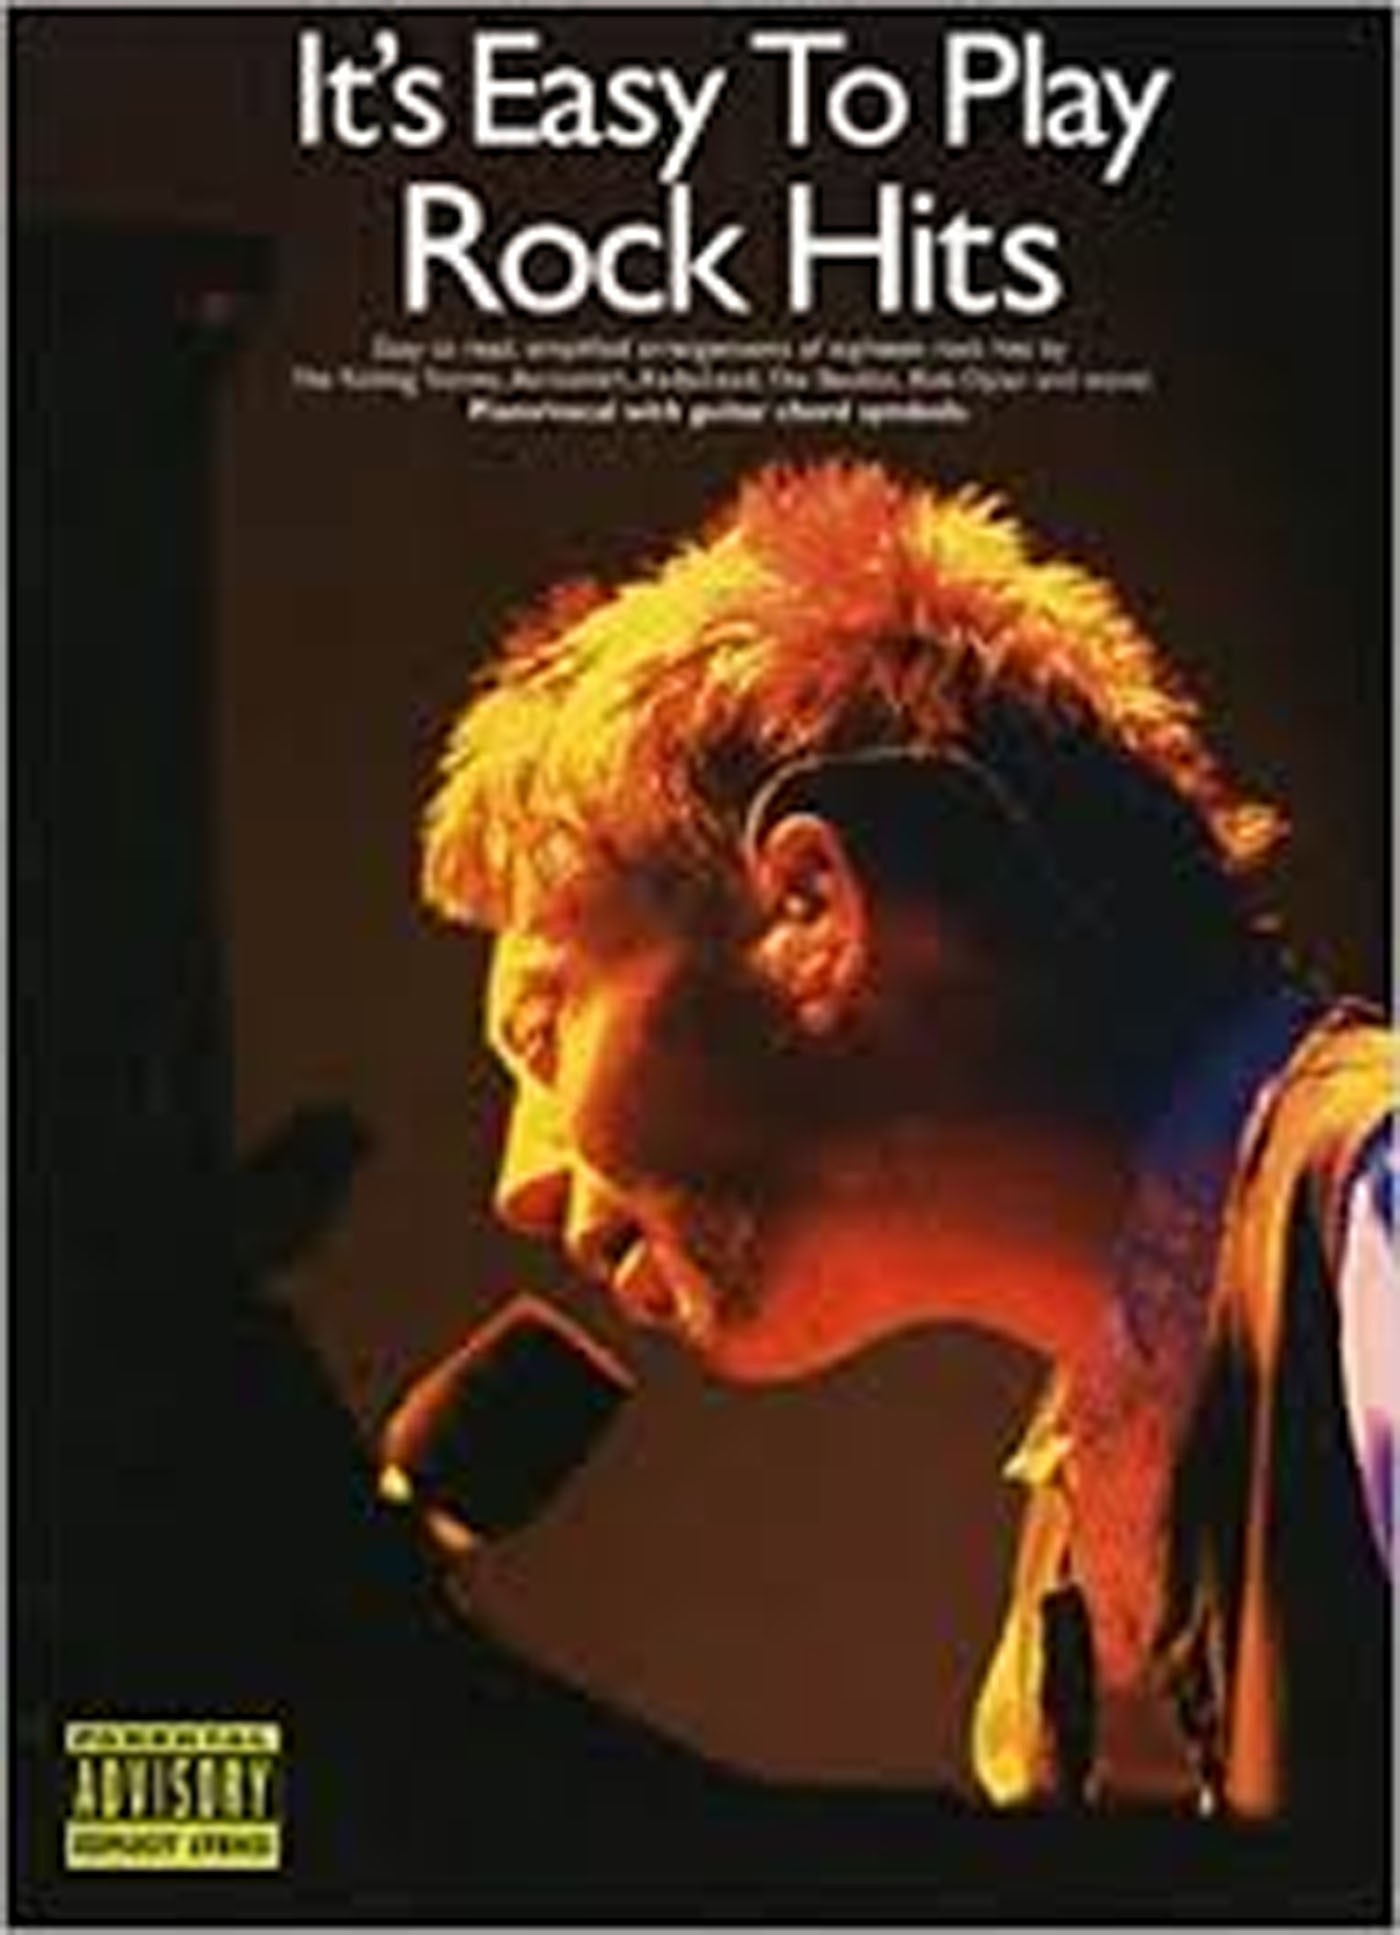 It's Easy To Play Rock Hits Book Piano Vocal Guitar Chord Symbols 18 Songs S141